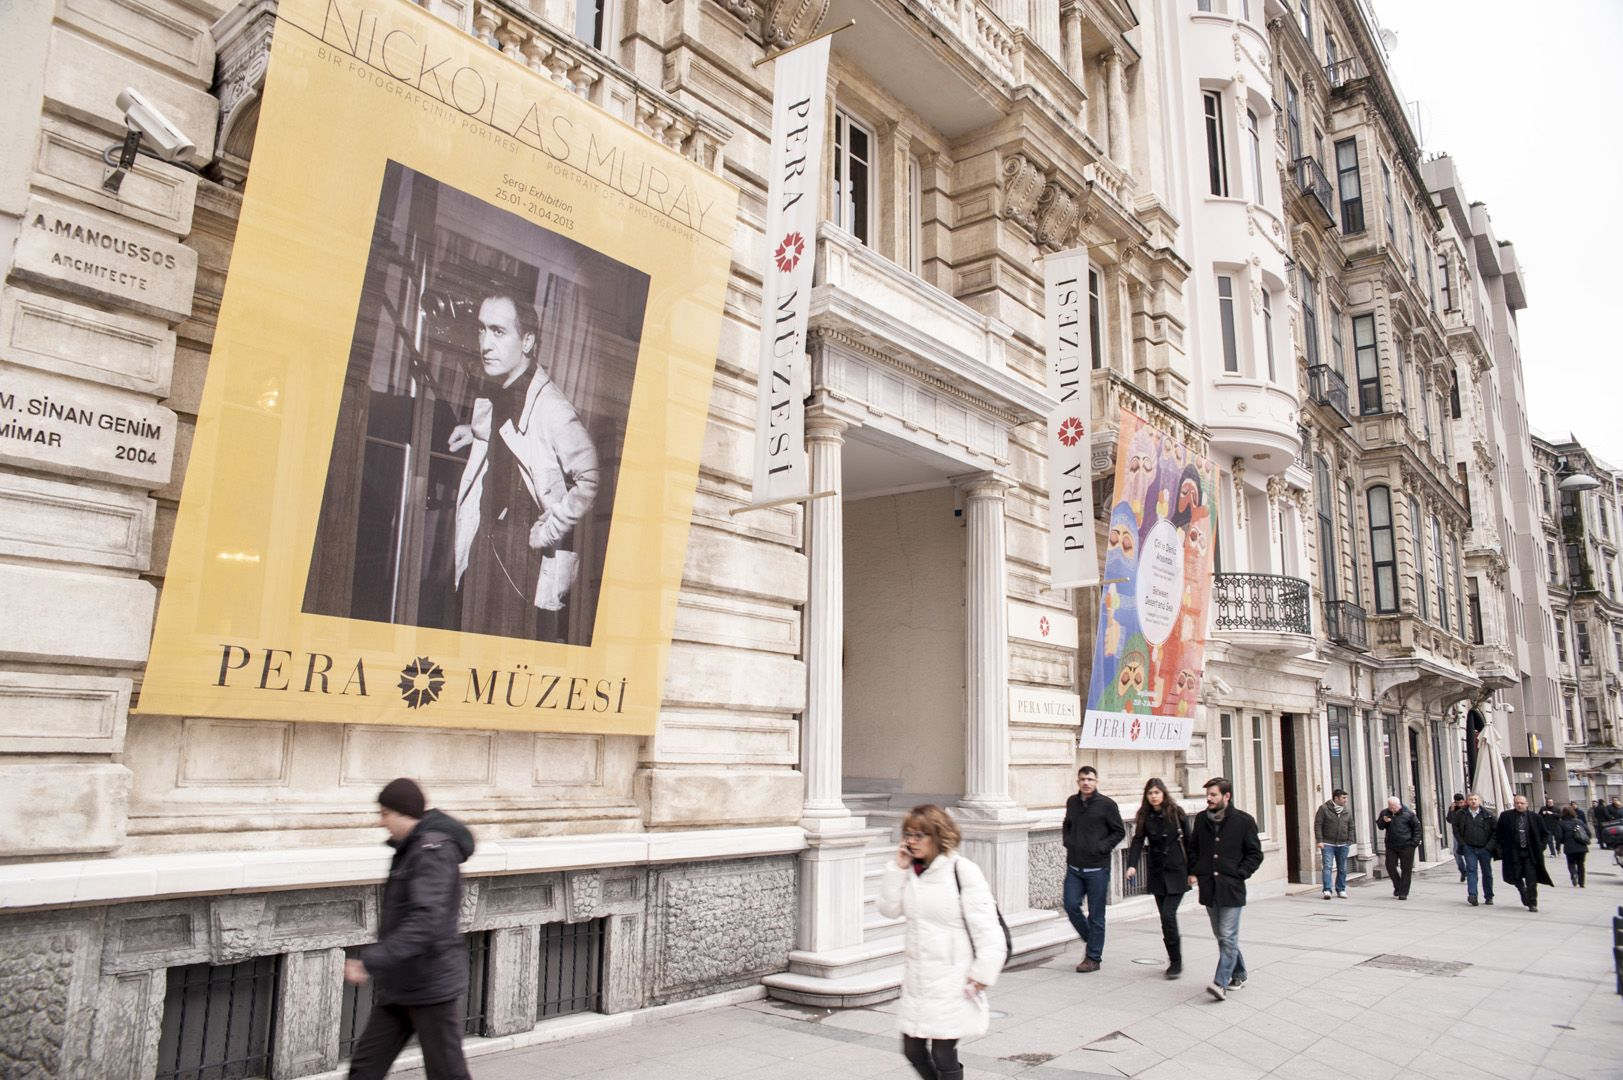 Pera Museum, housed in the former Bristol Hotel, is among the sightseeing options at Istiklal Avenue